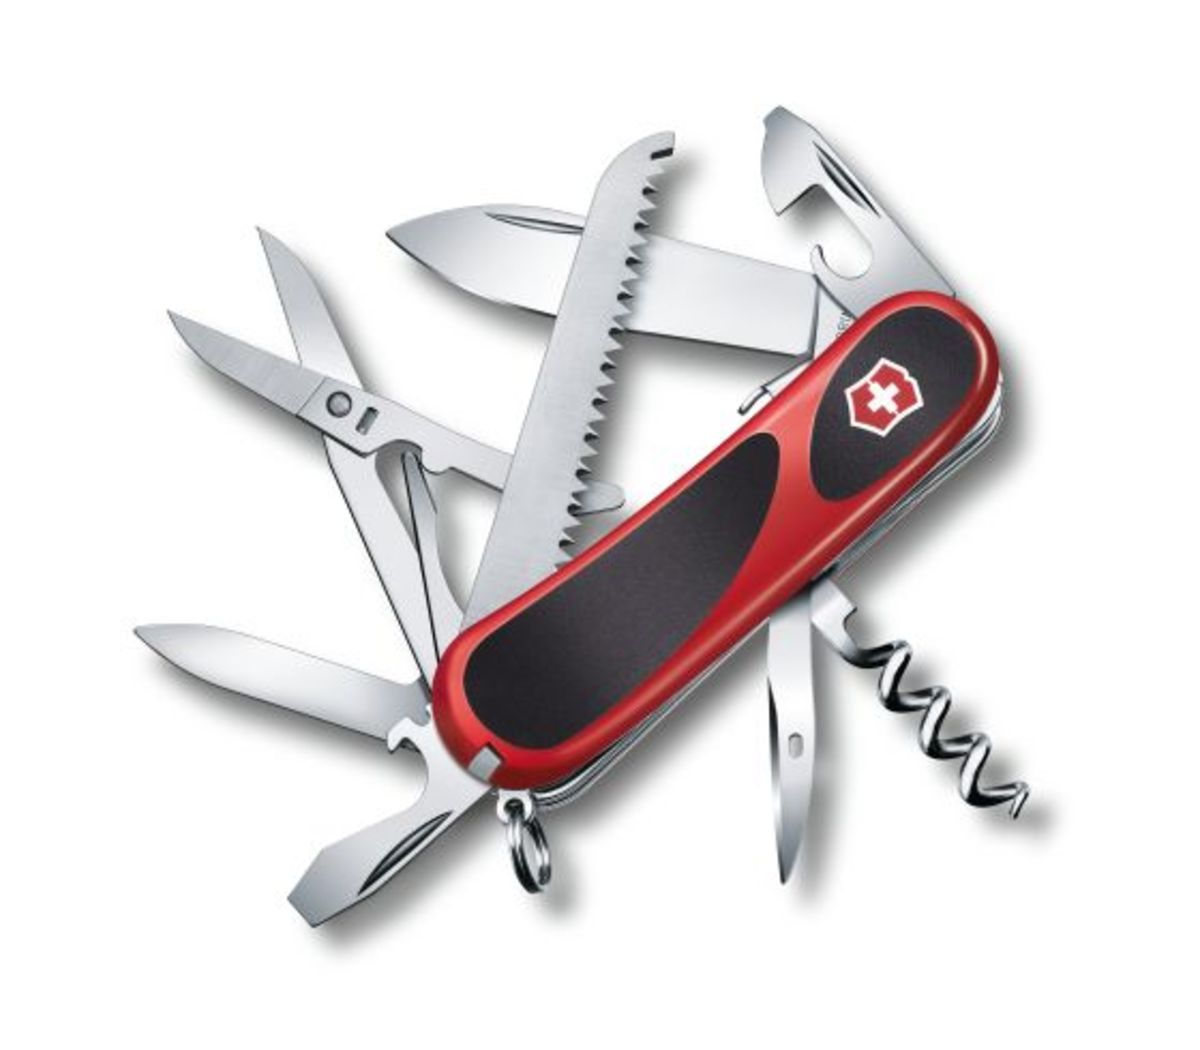 Victorinox Delemont Evolution Grip S17: The Perfect EDC Swiss Army Knife